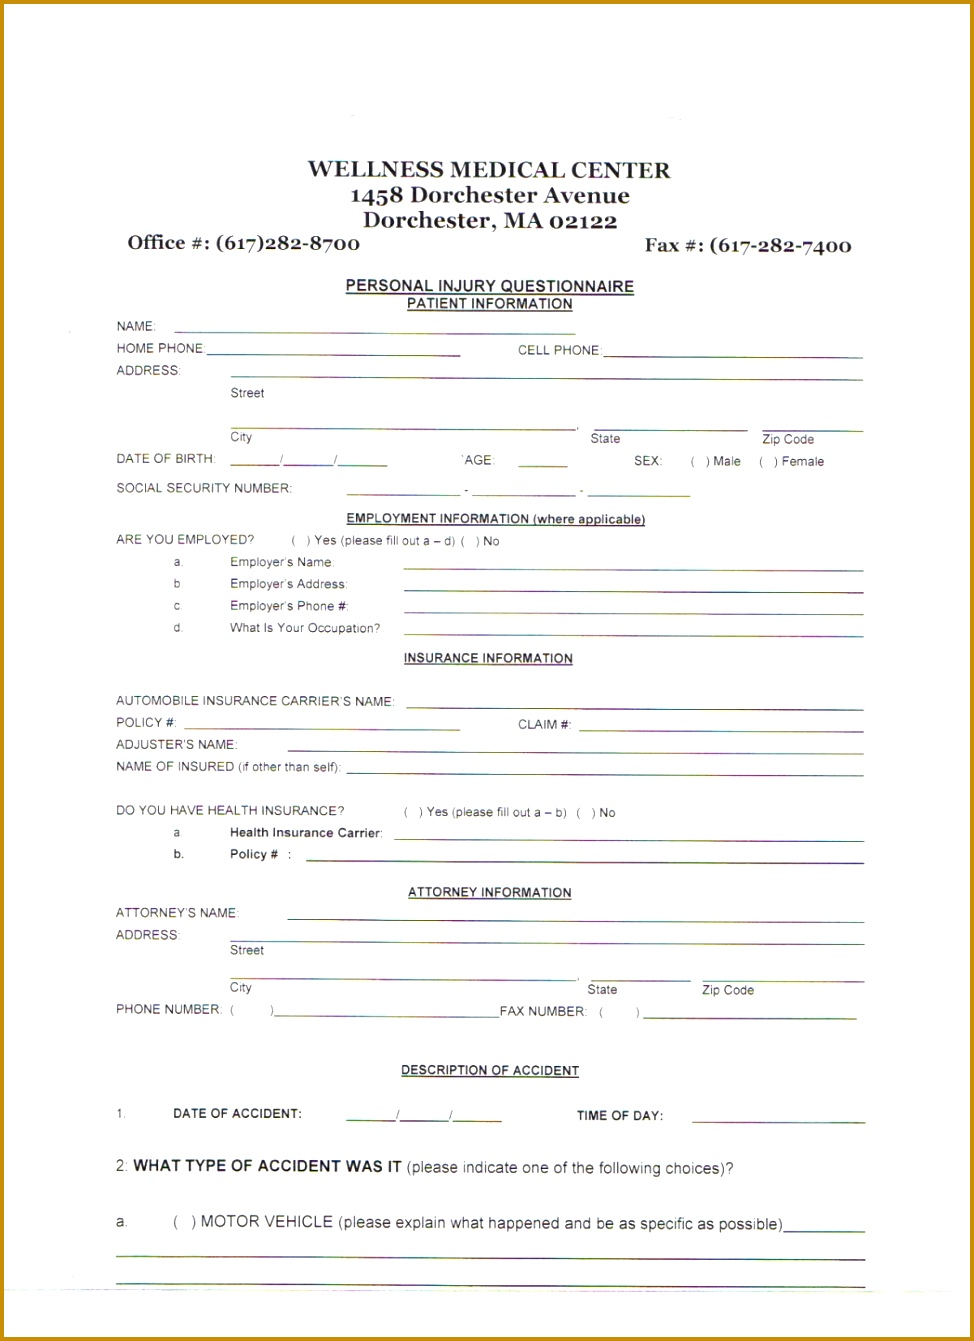 6 physical therapy intake form template fabtemplatez fabtemplatez patient intake form blue poppy enterprises template word vawebs 1341974 100 massage therapy intake form template physical pronofoot35fo Image collections